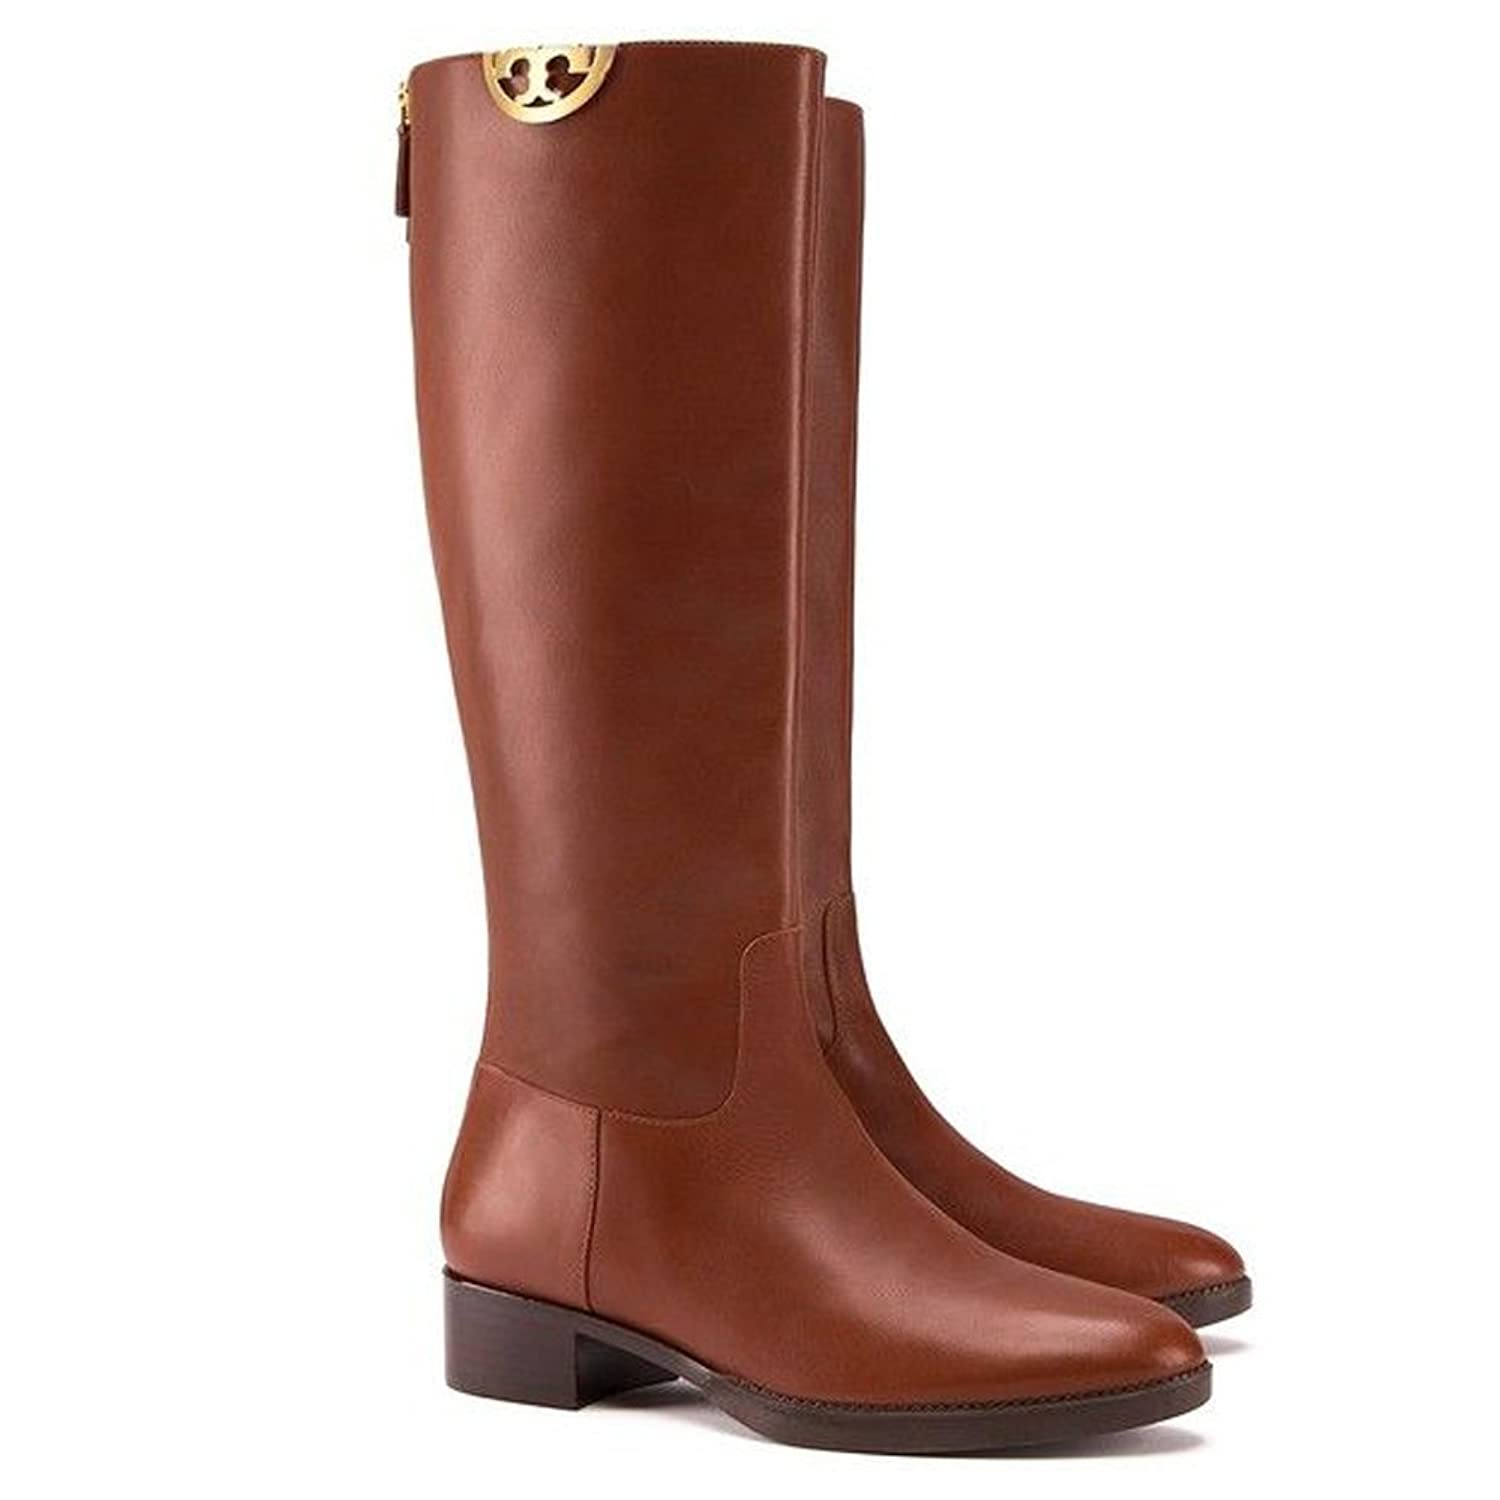 Tory Burch Women's Sidney Leather Boots B01N6L27PD 7 B(M) US